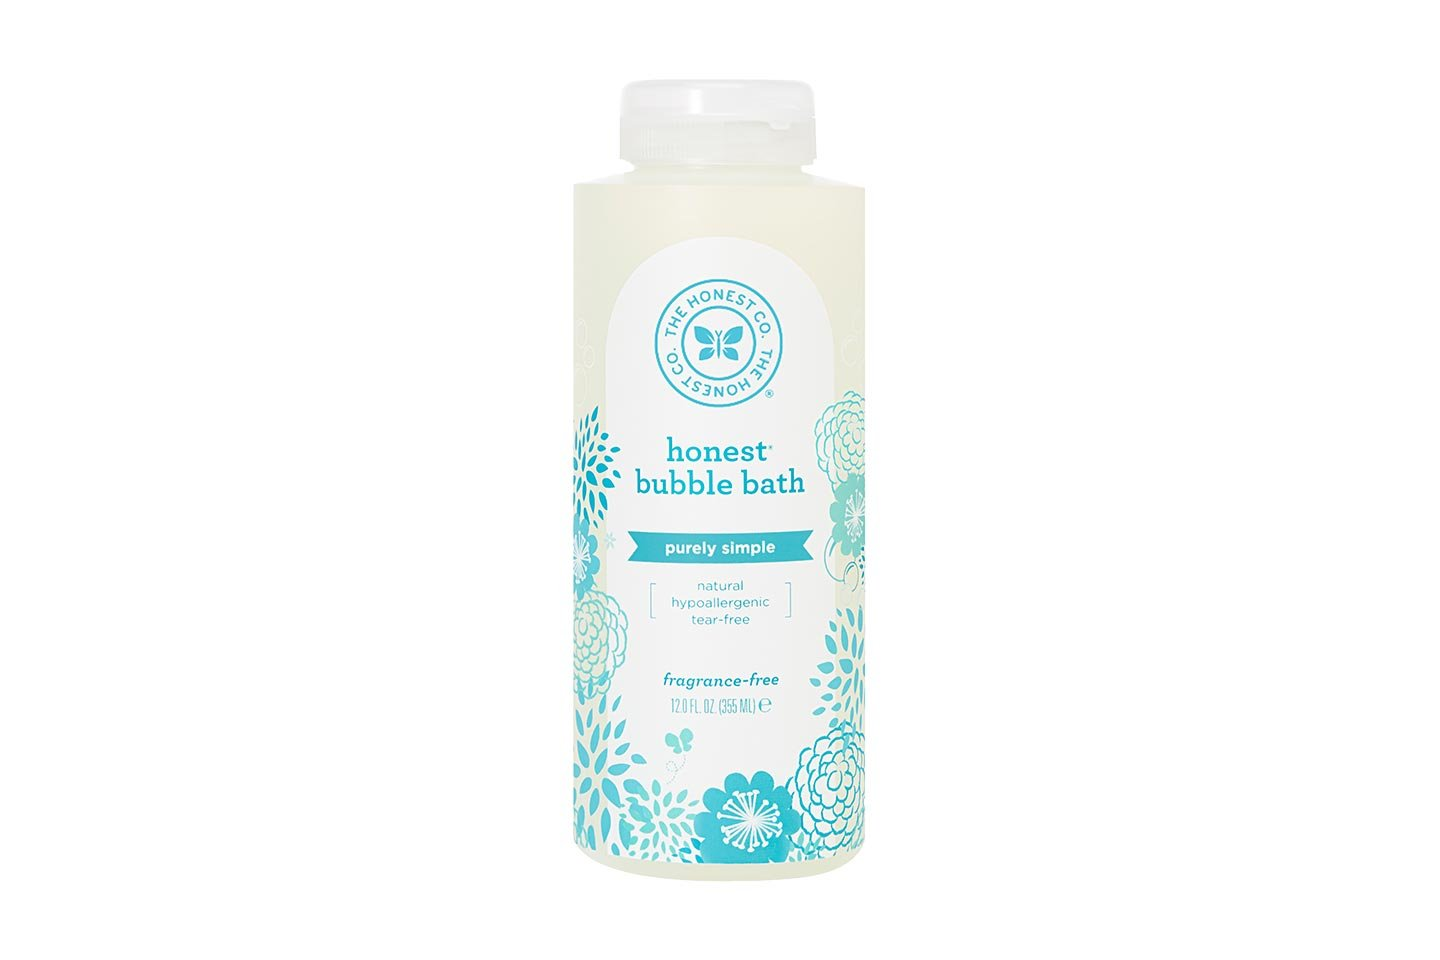 Honest Purely Simple Hypoallergenic Bubble Bath with Naturally Derived Botanicals for Sensitive Skin, Fragrance Free, 12 Fluid Ounce